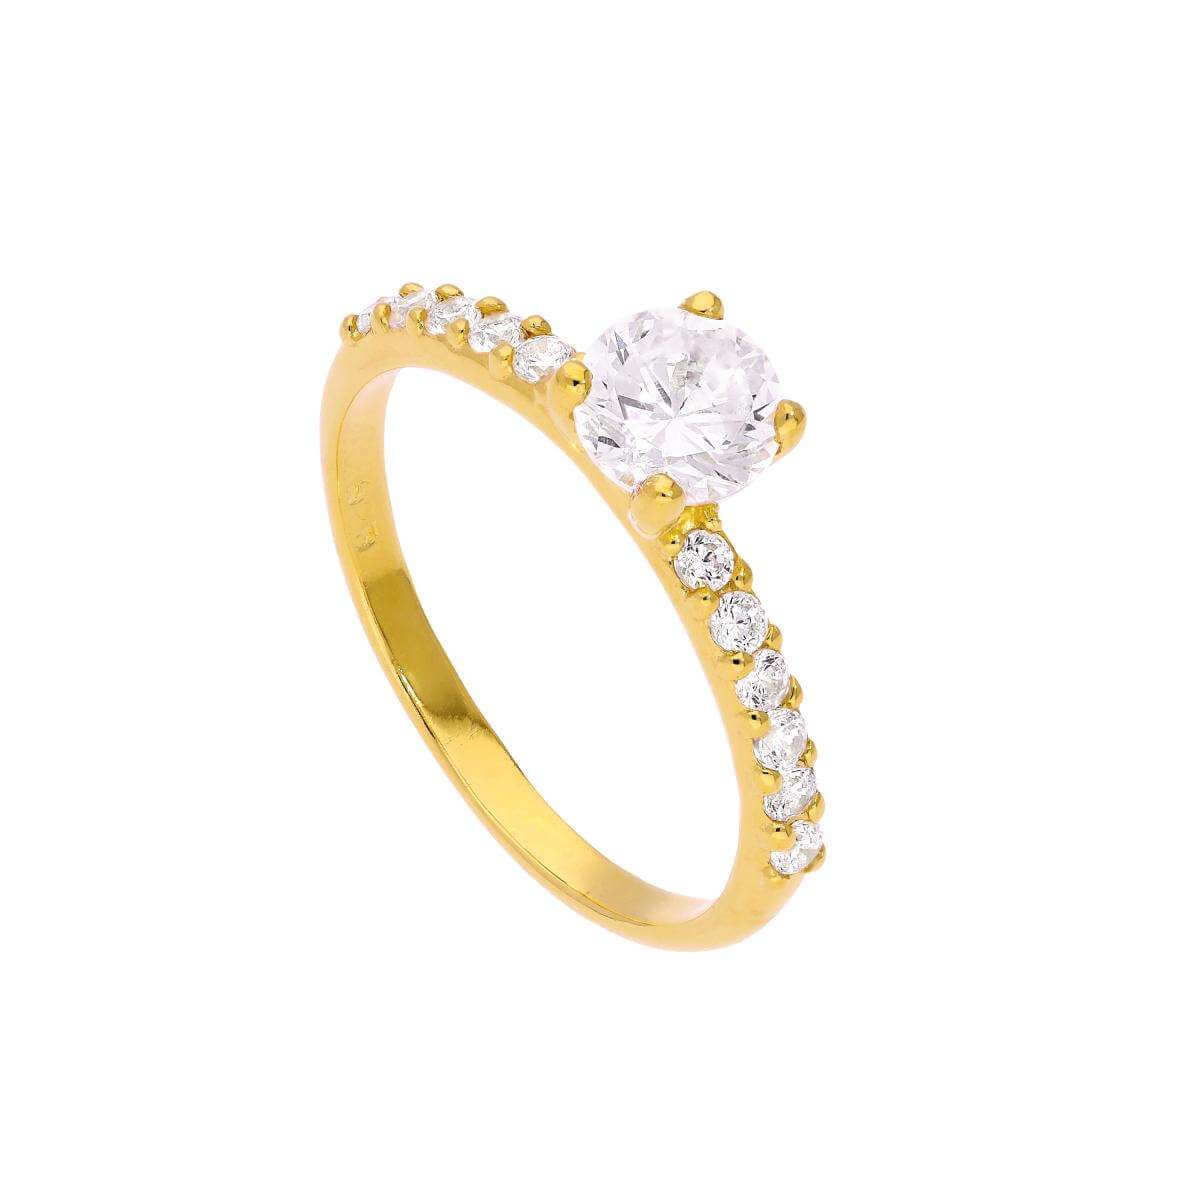 Gold Plated Sterling Silver & Clear CZ Crystal Ring Size J - W